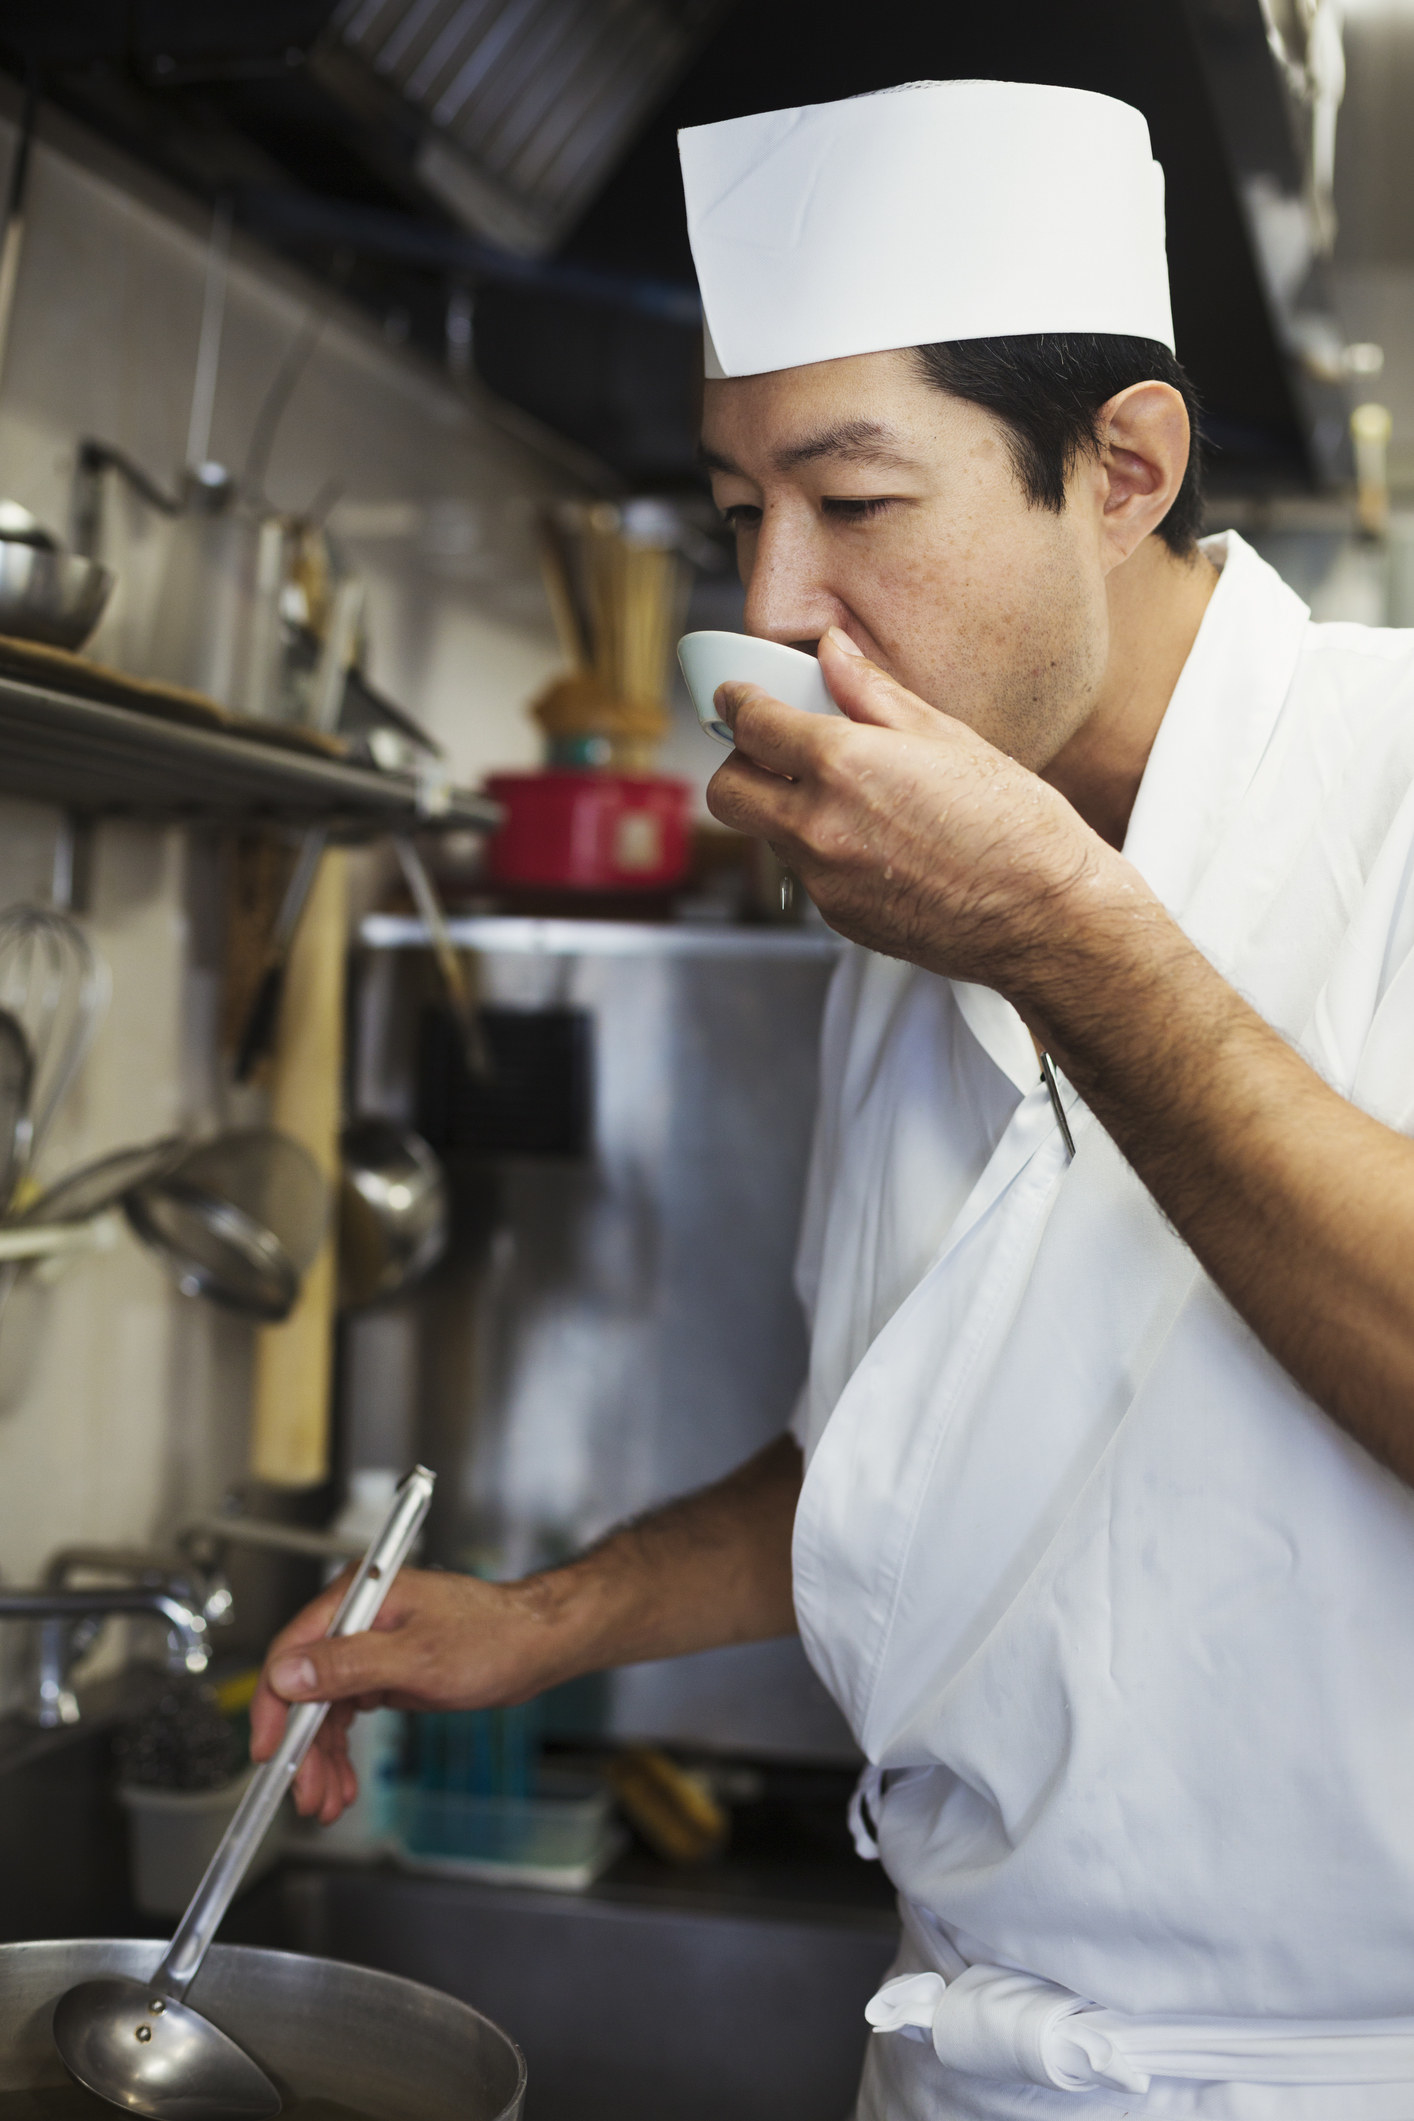 Chef working in the kitchen of a Japanese sushi restaurant, tasting food